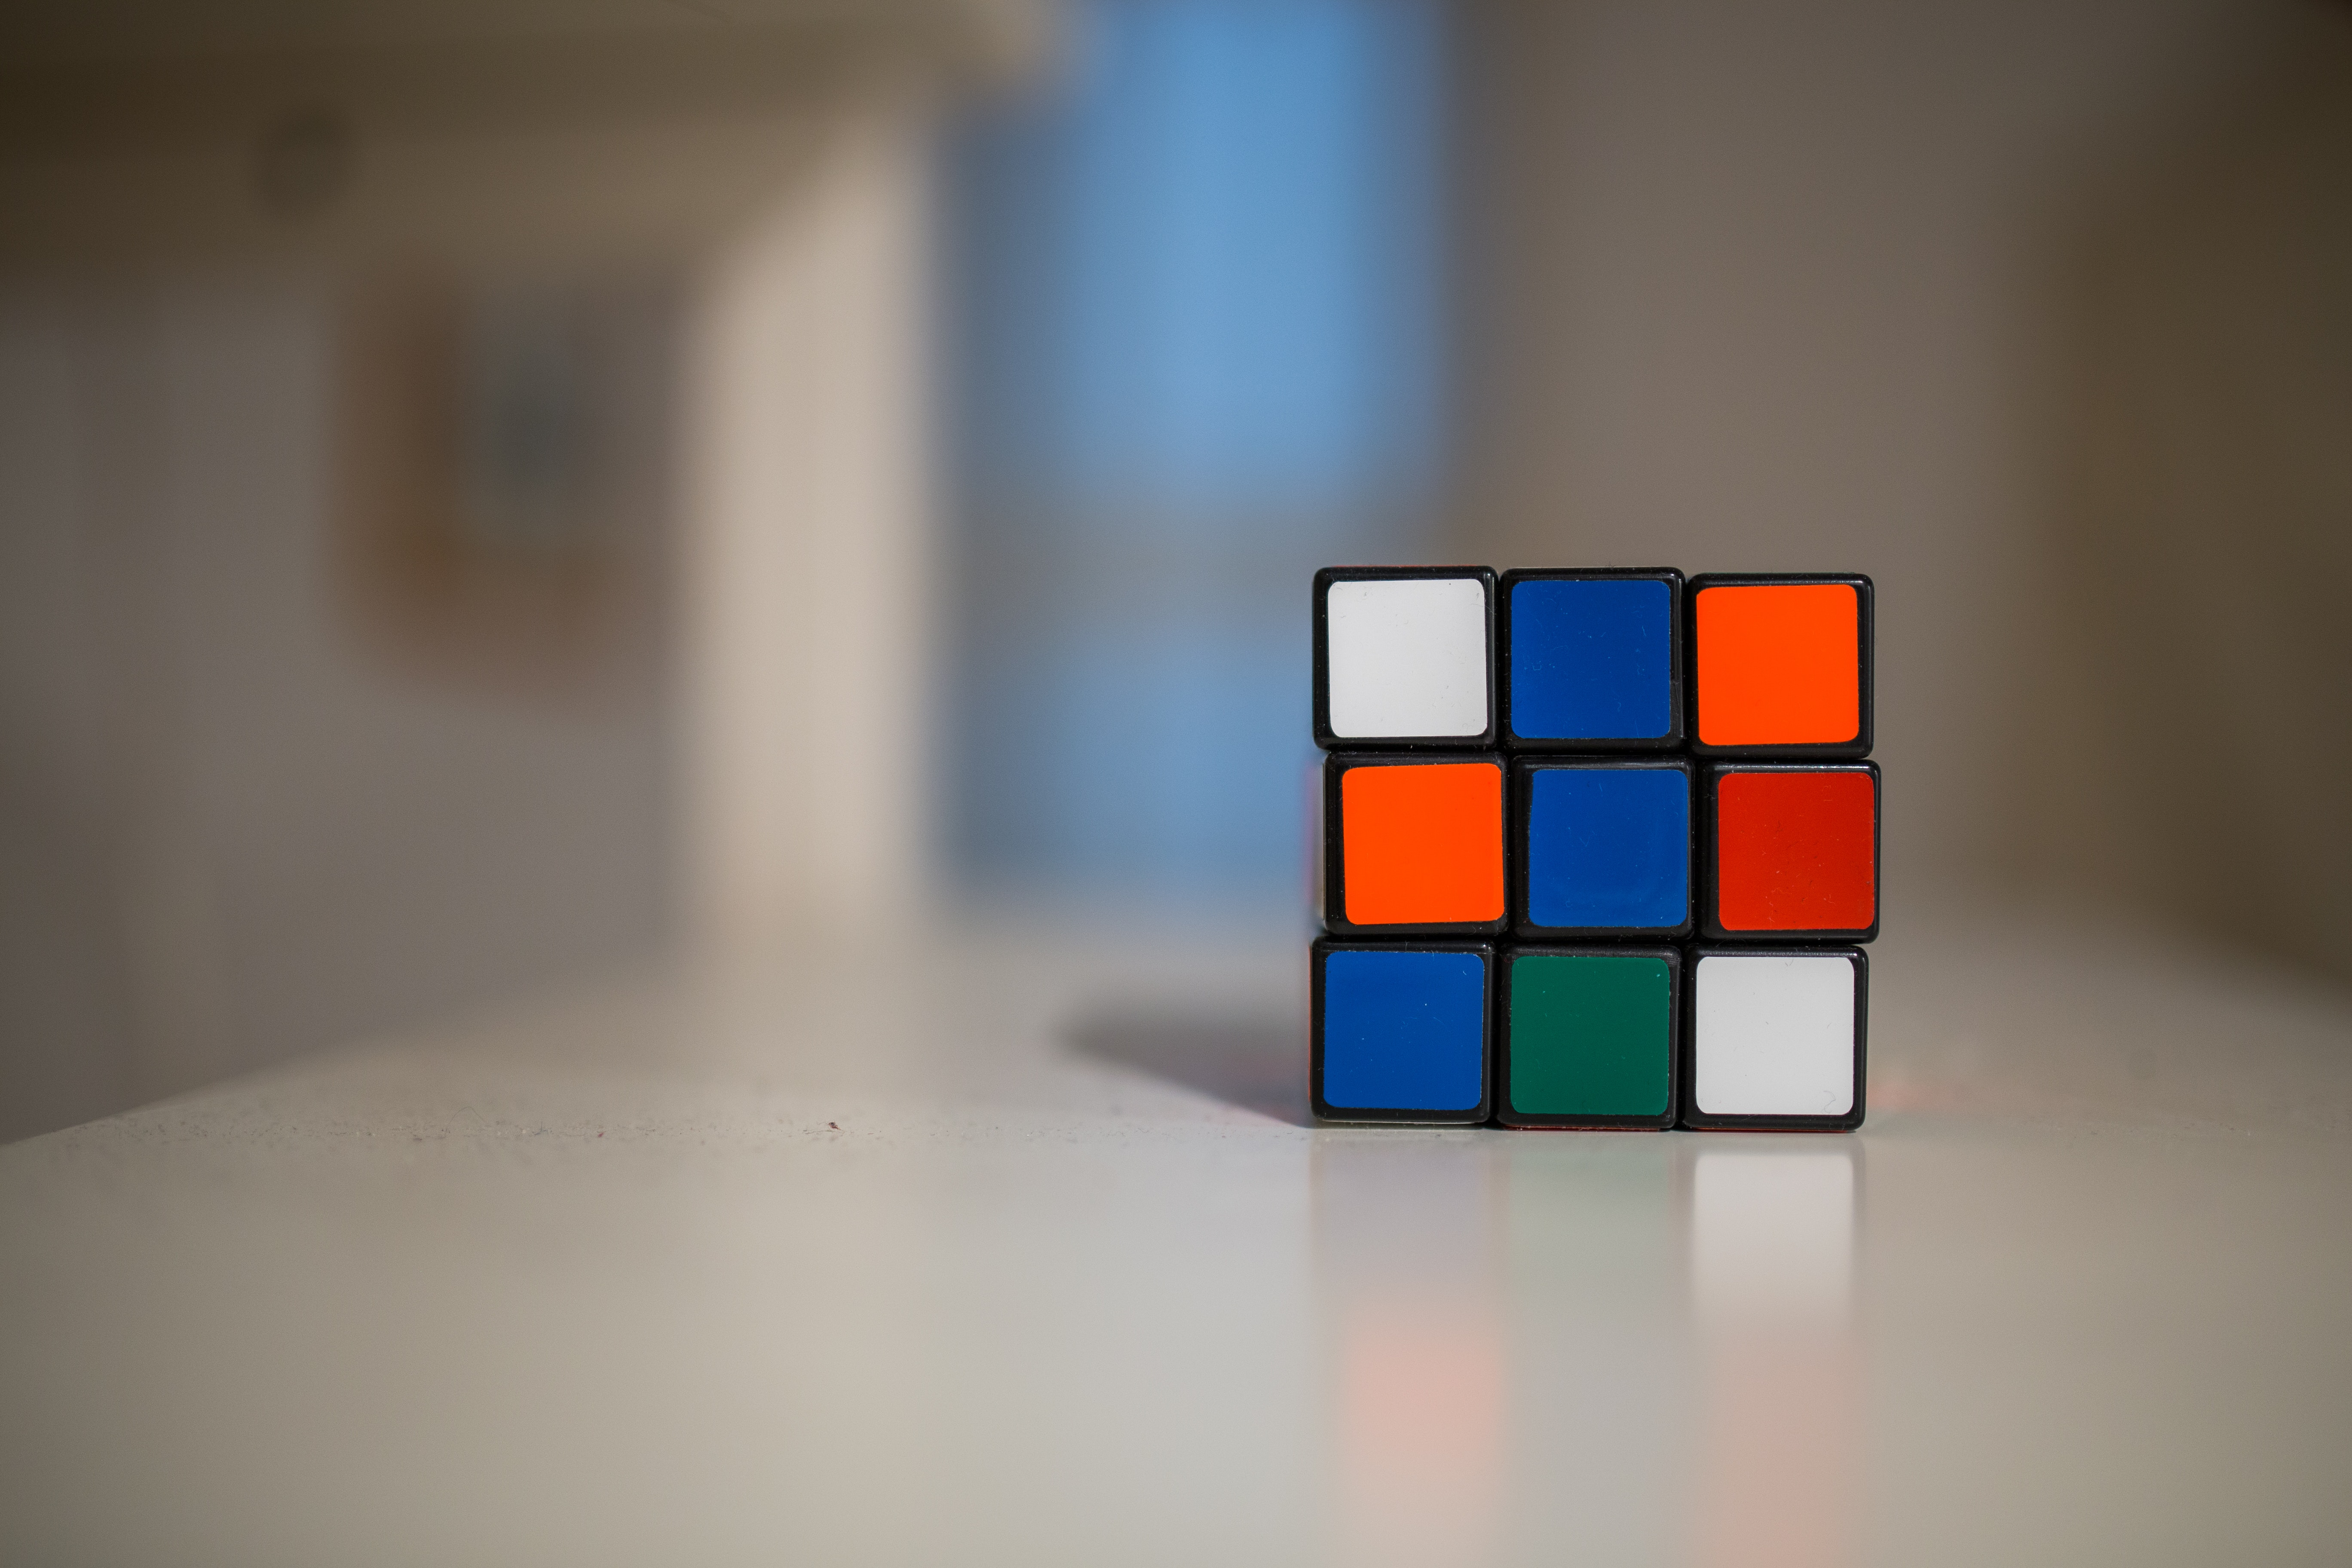 Personality tests for jobs: Rubik's cube